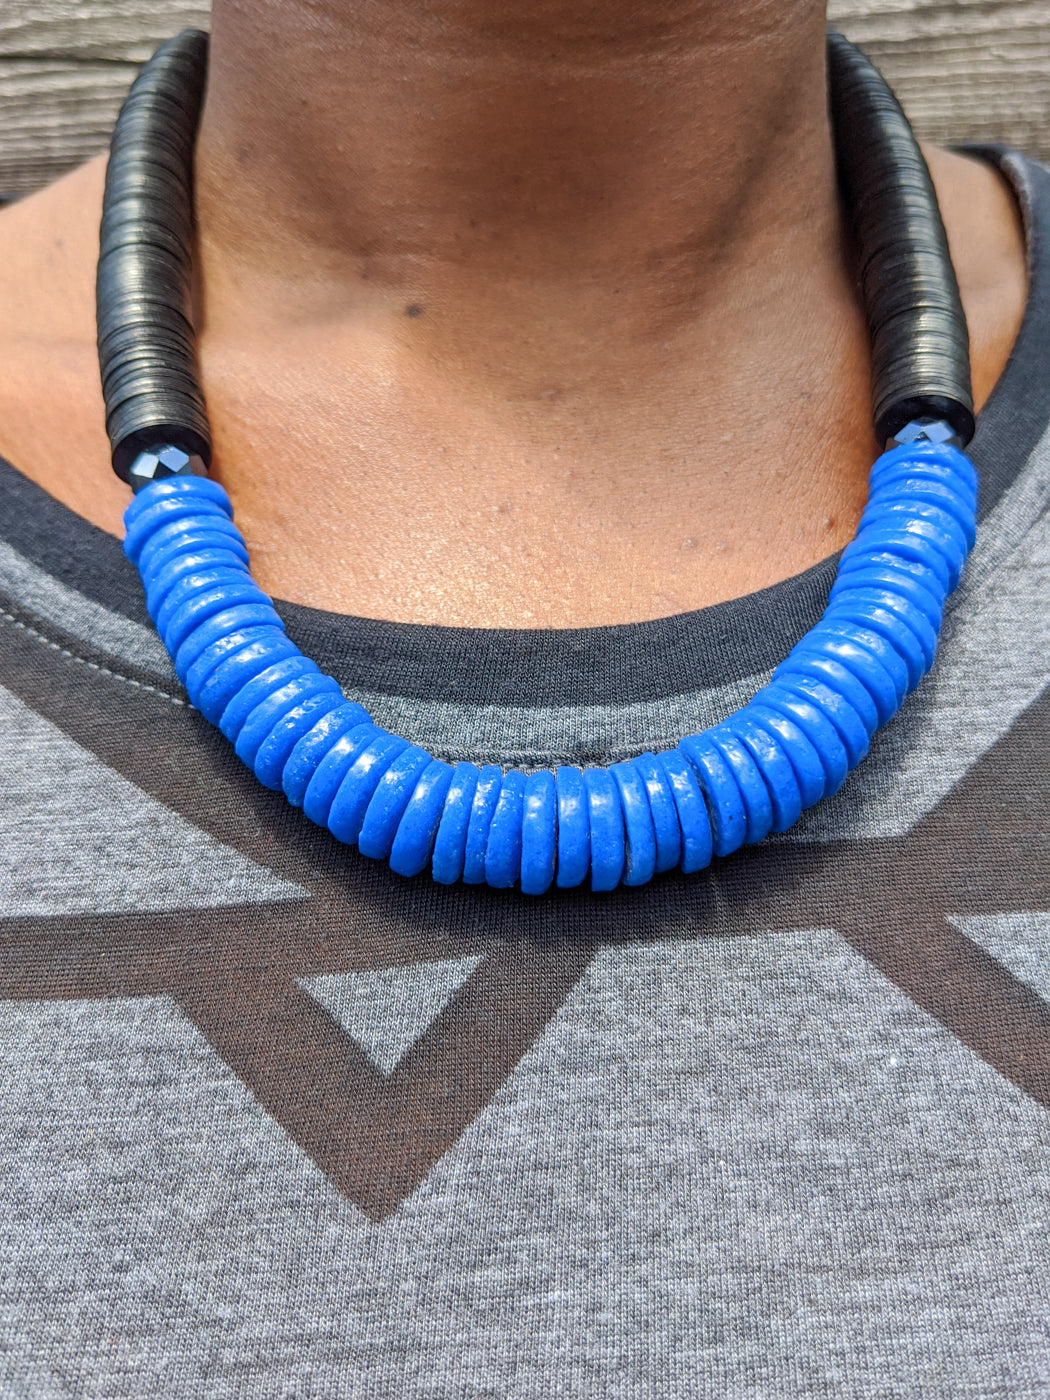 Blue and Black Flat Beads Necklace